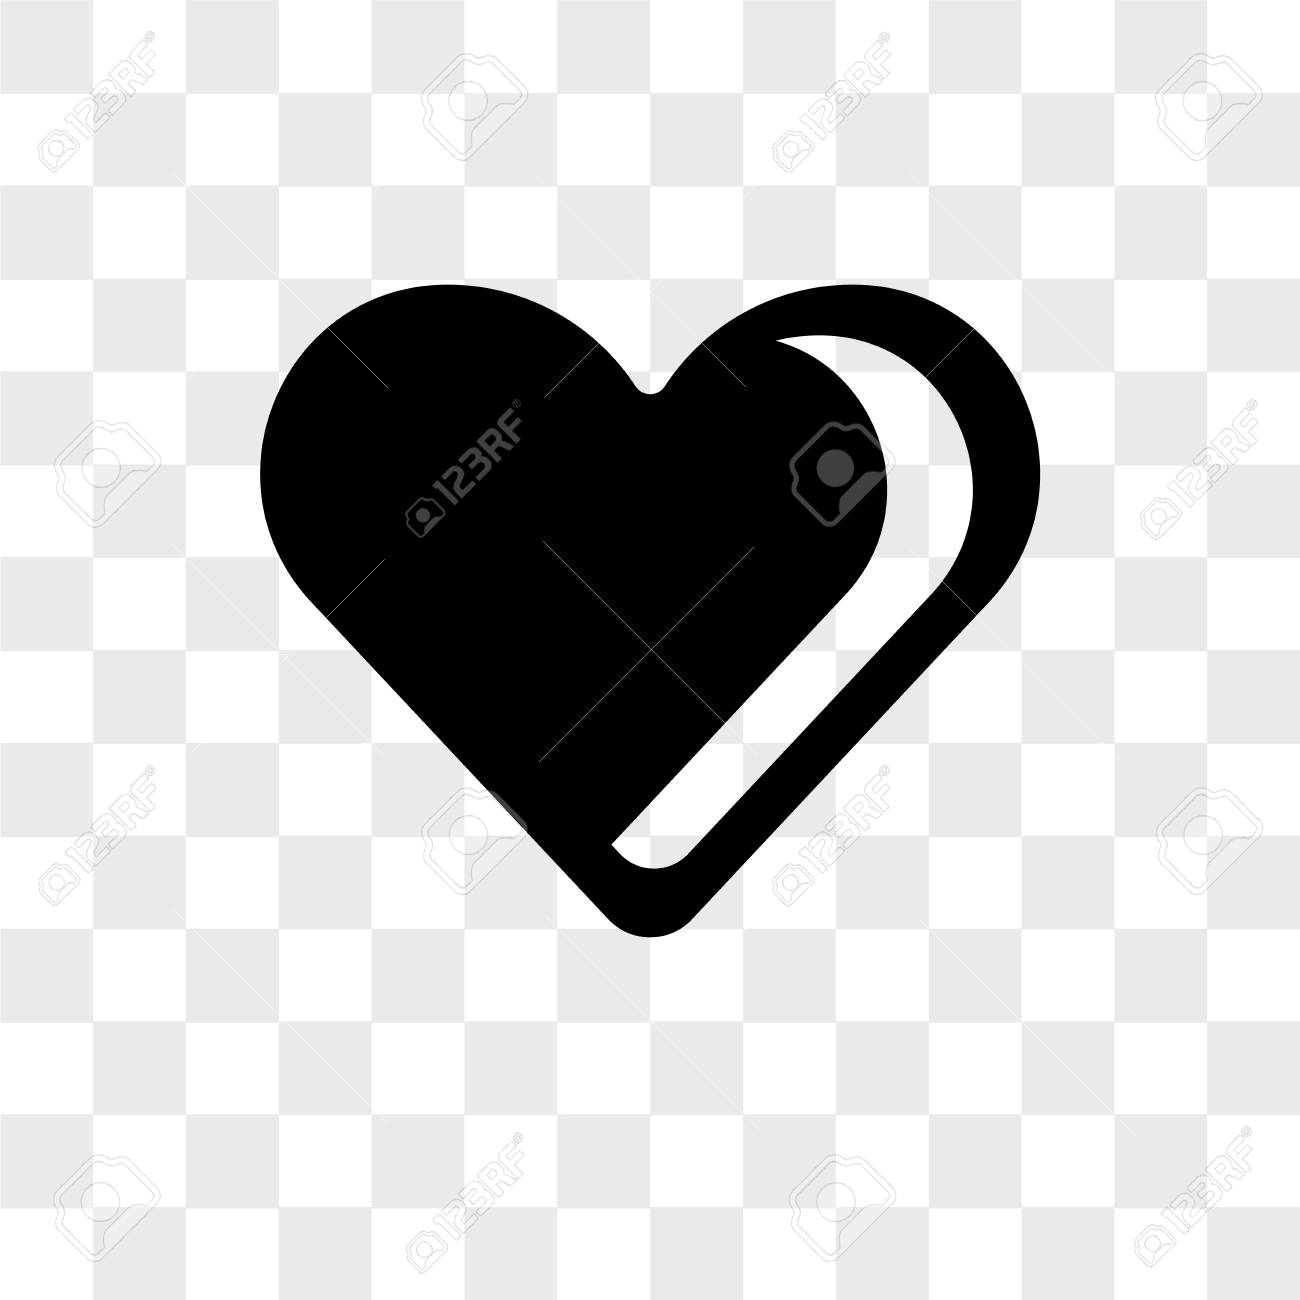 Black Heart Shaped Vector Icon Isolated On Transparent Background